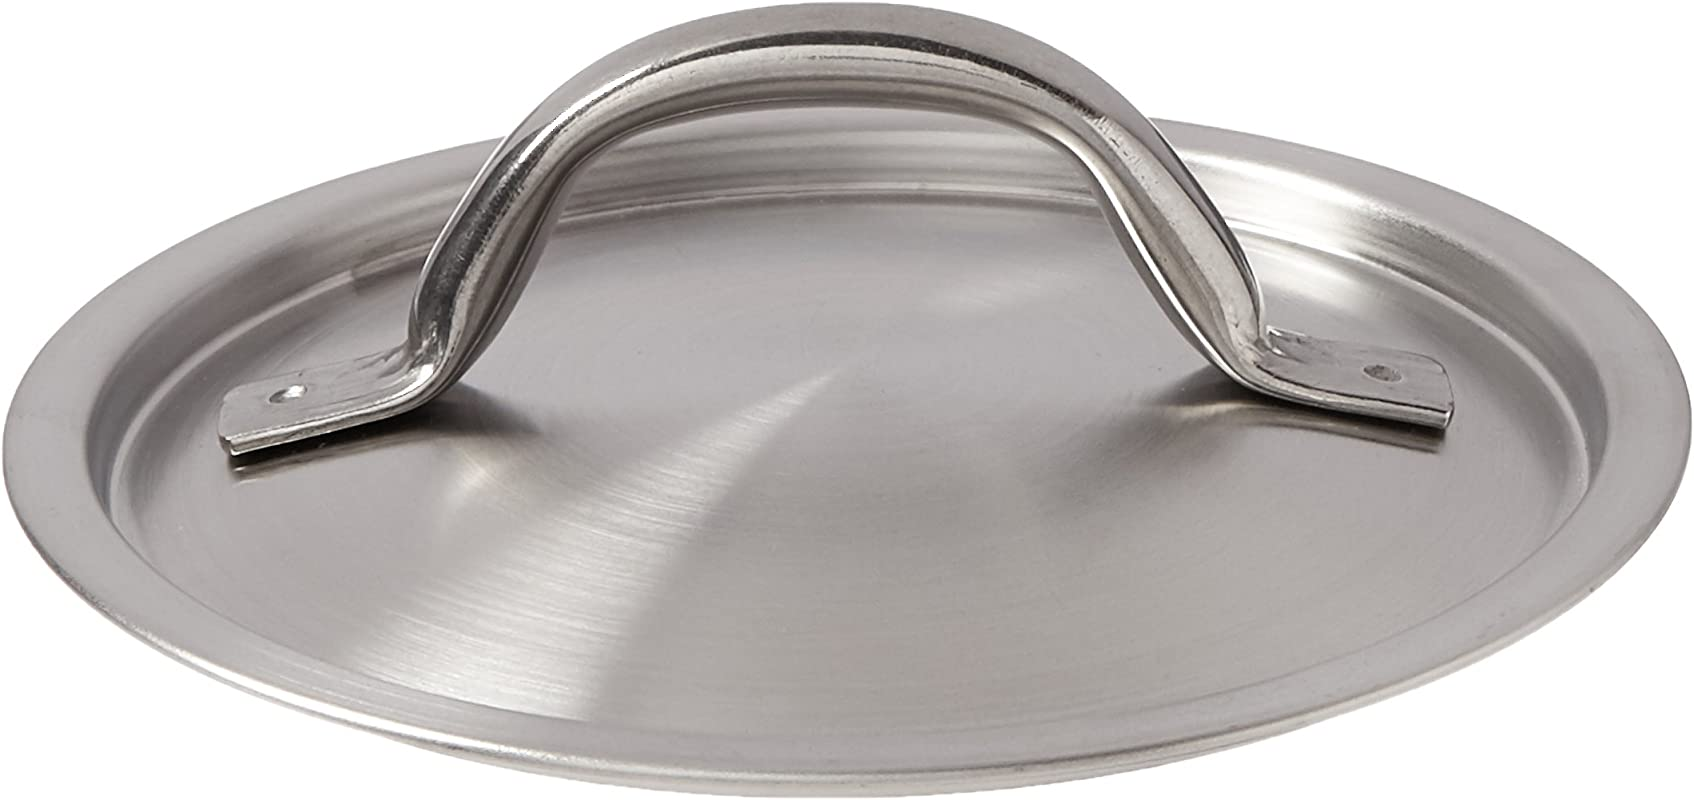 Paderno World Cuisine Grand Gourmet Stainless Steel 5 1 2 Inch Lid